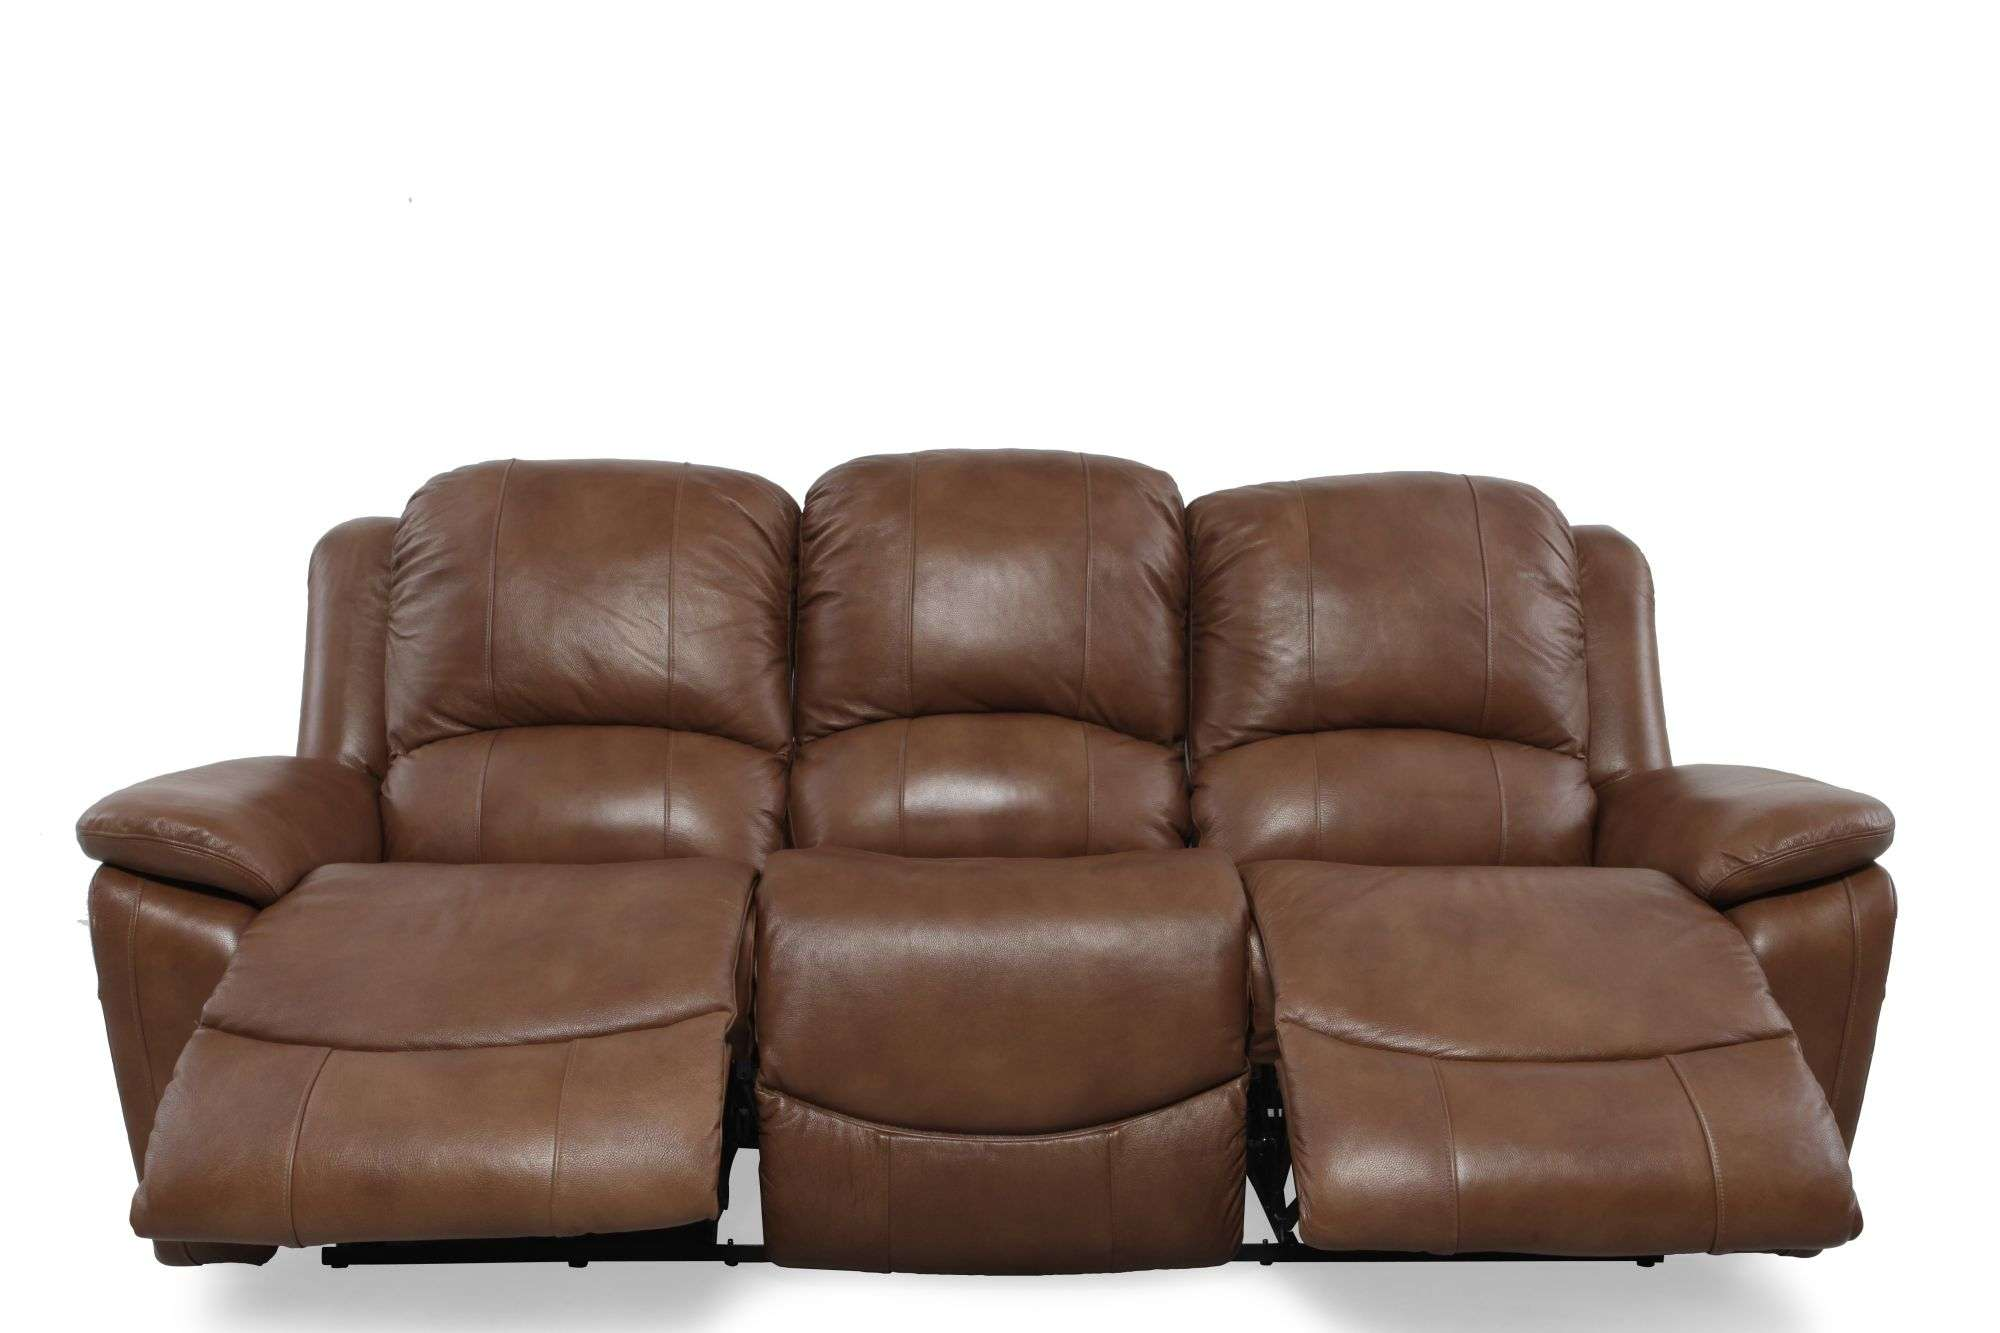 Boy Owen Wheat Leather Reclining Sofa Mathis Brothers Furniture